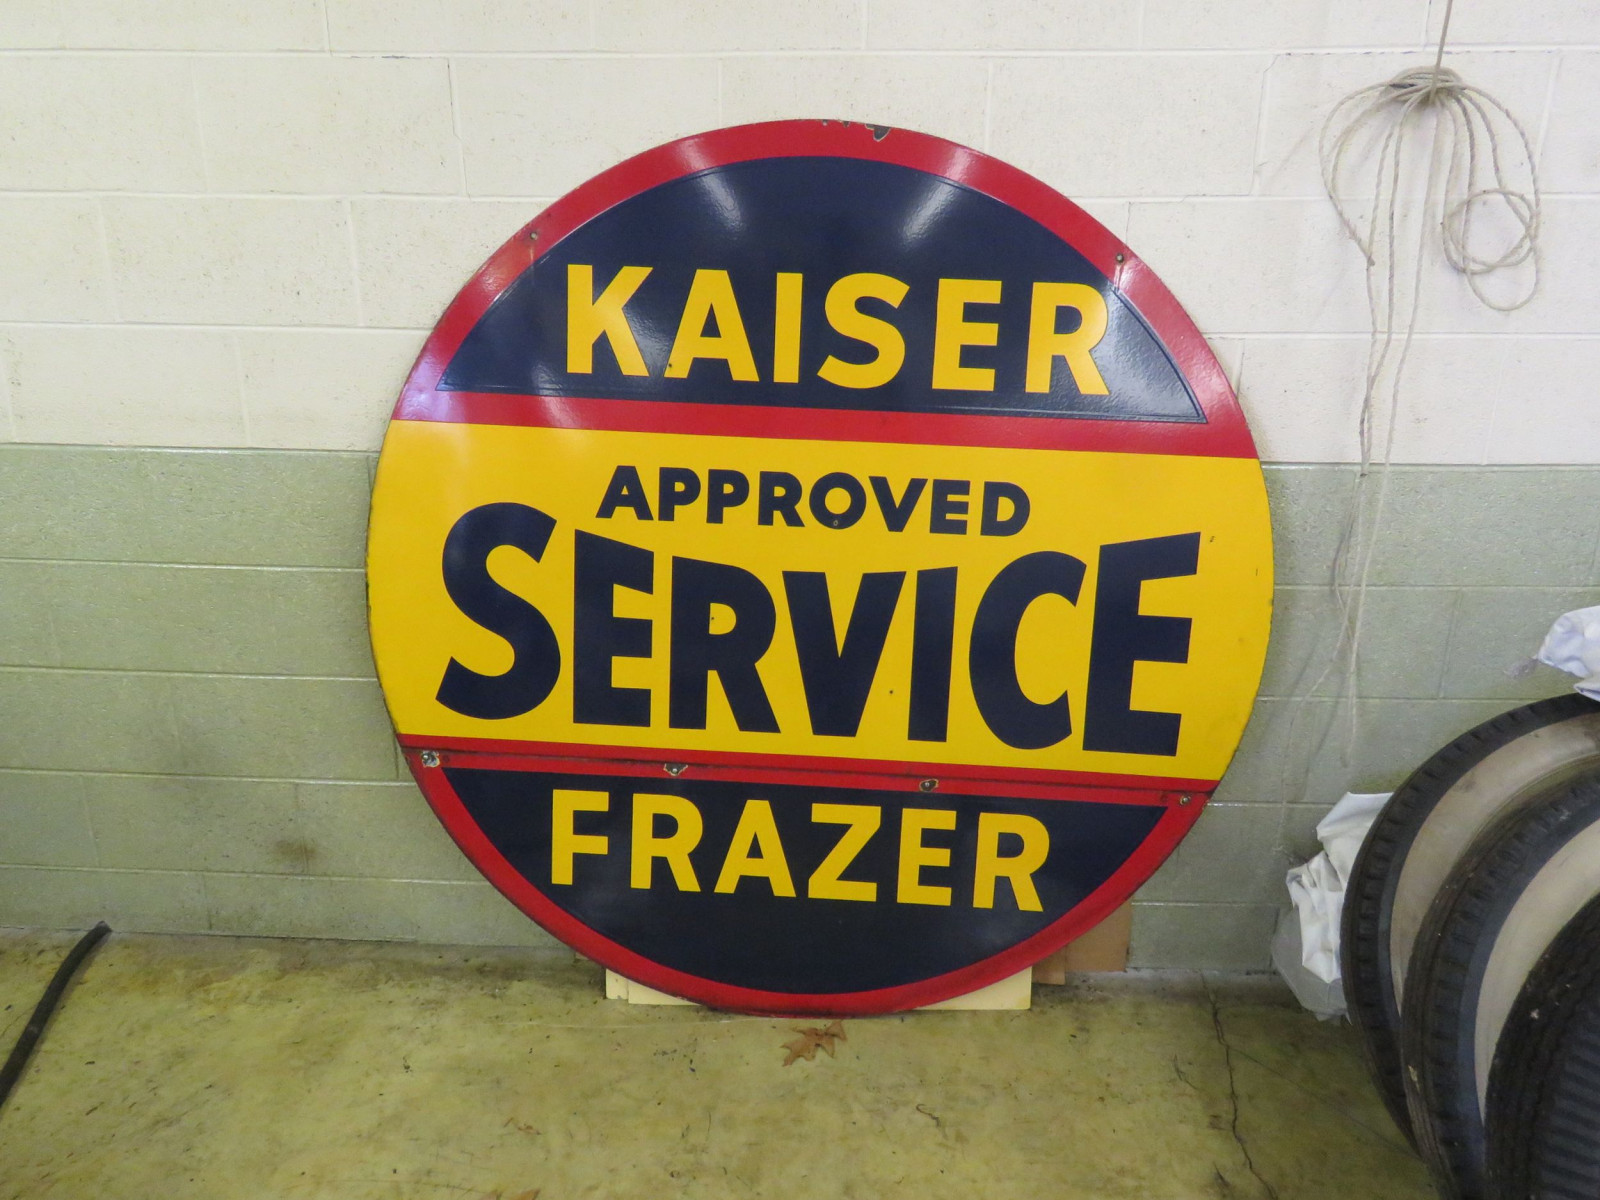 Kaiser-Frazer Approved Service Porcelain Sign - Image 1